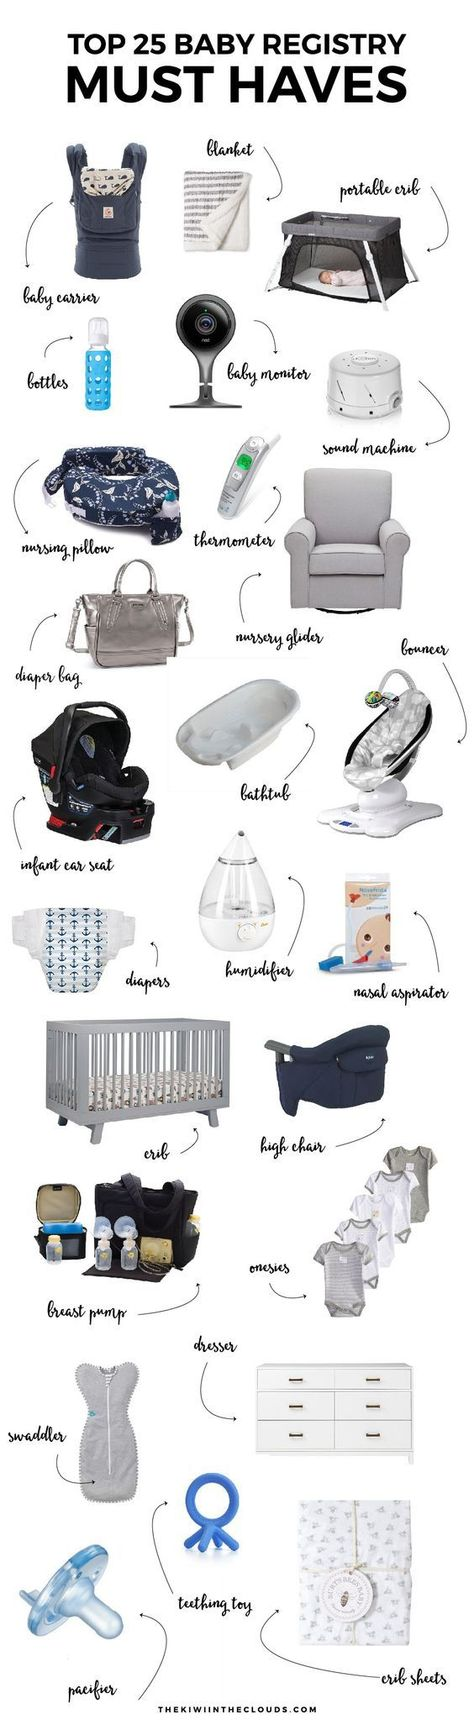 Top 25 Baby Registry Must Haves | Creating the perfect registry can be overwhelming, time consuming and costly. Skip the mistakes of a first time mom and discover what baby items you actually need!: